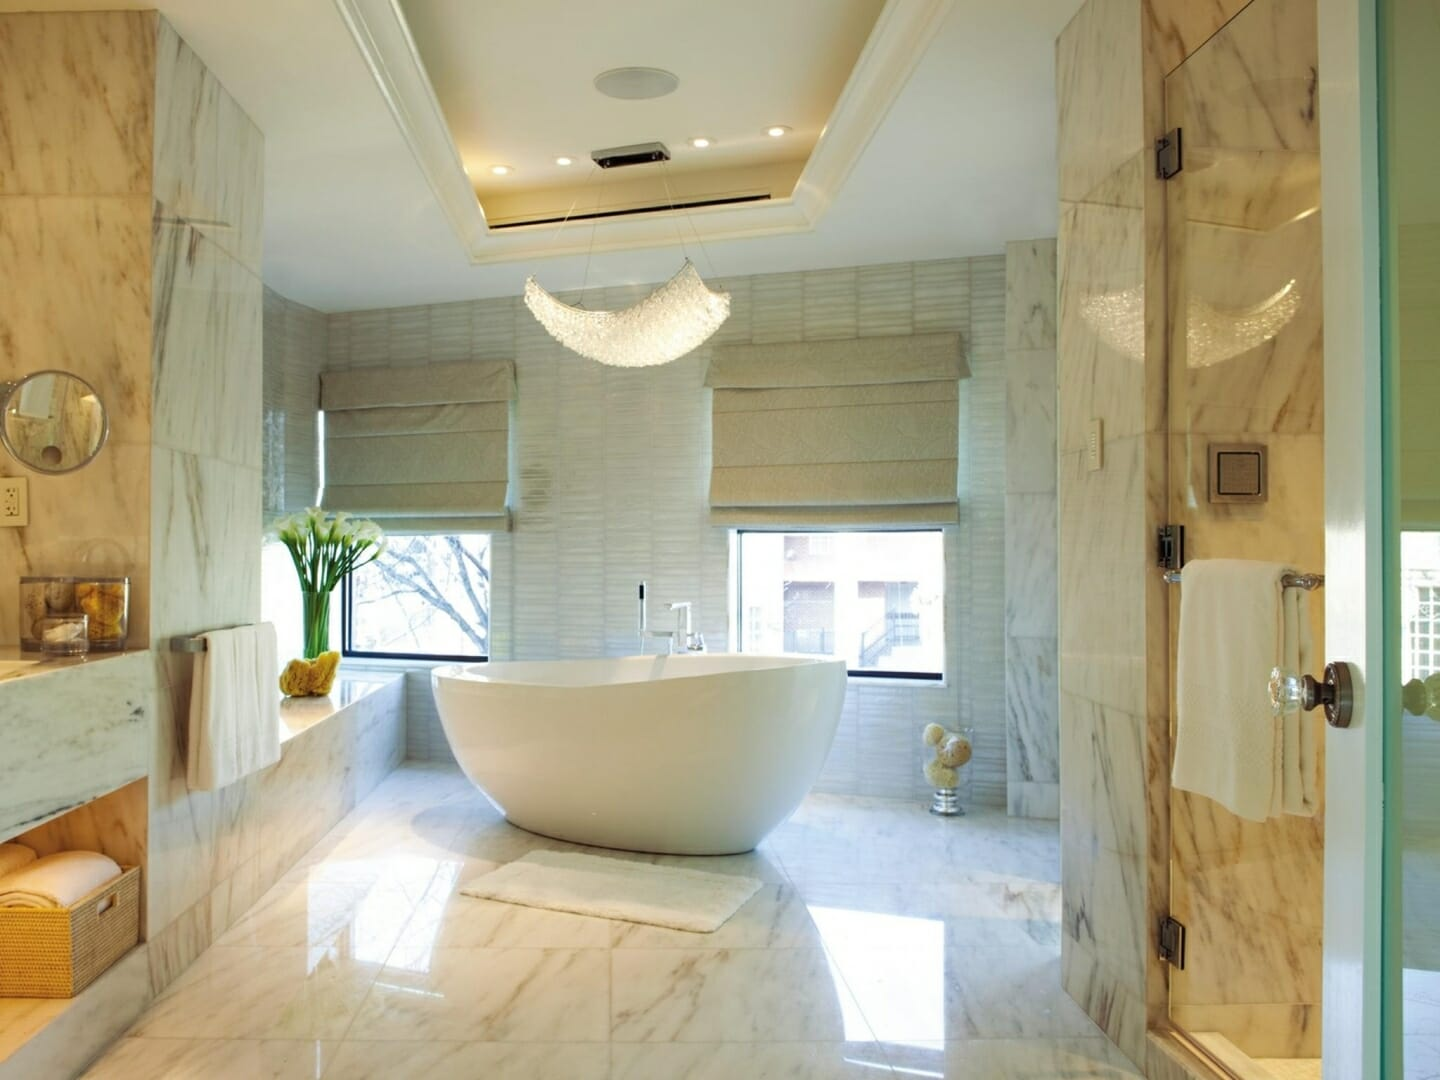 Small Bathroom Design Marble stunning tile designs for your bathroom remodel - modernize